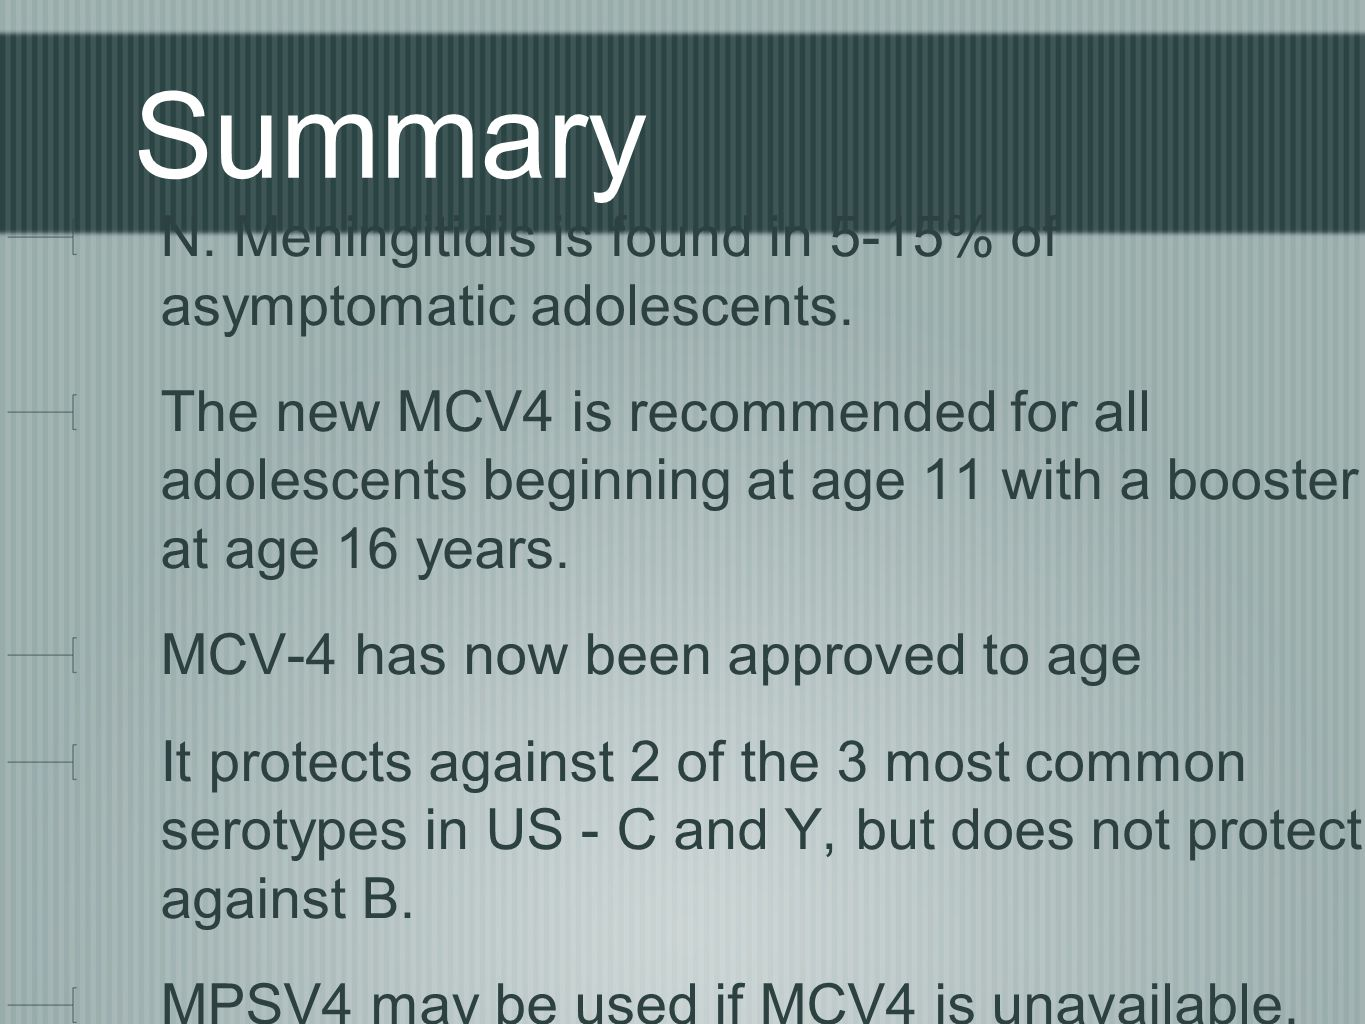 Summary N. Meningitidis is found in 5-15% of asymptomatic adolescents.